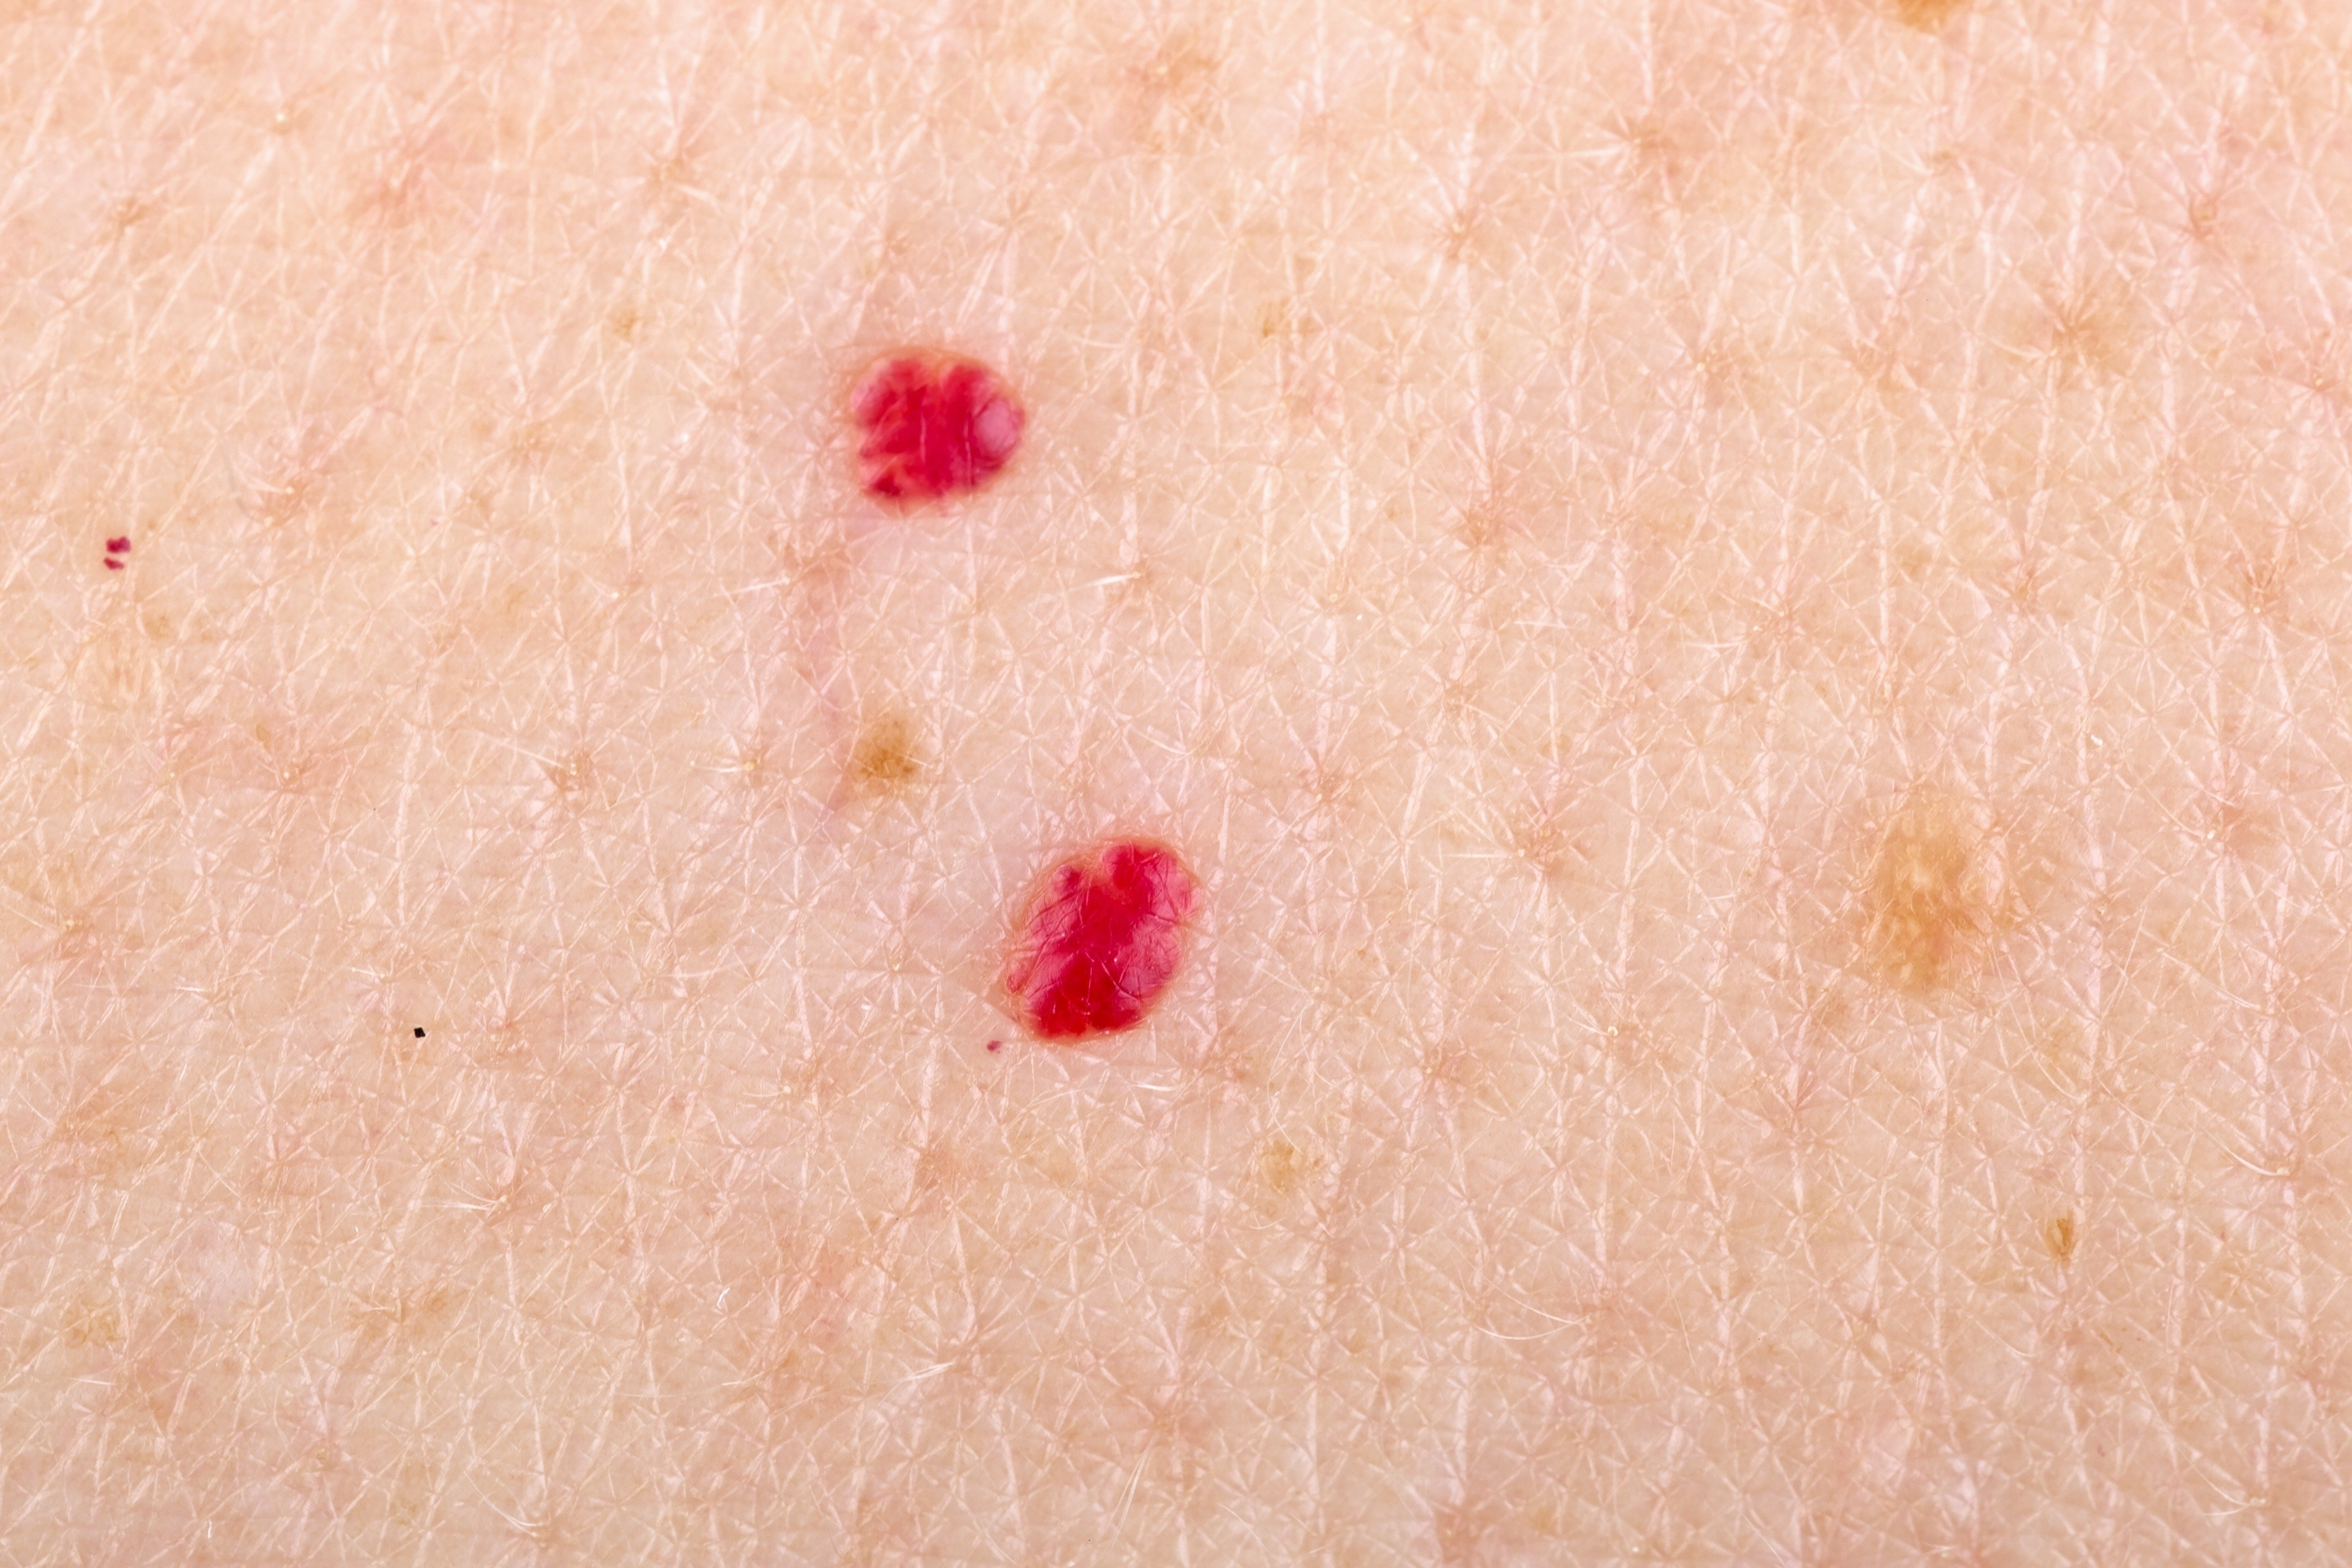 An image depicting a person suffering from Cherry Angioma symptoms